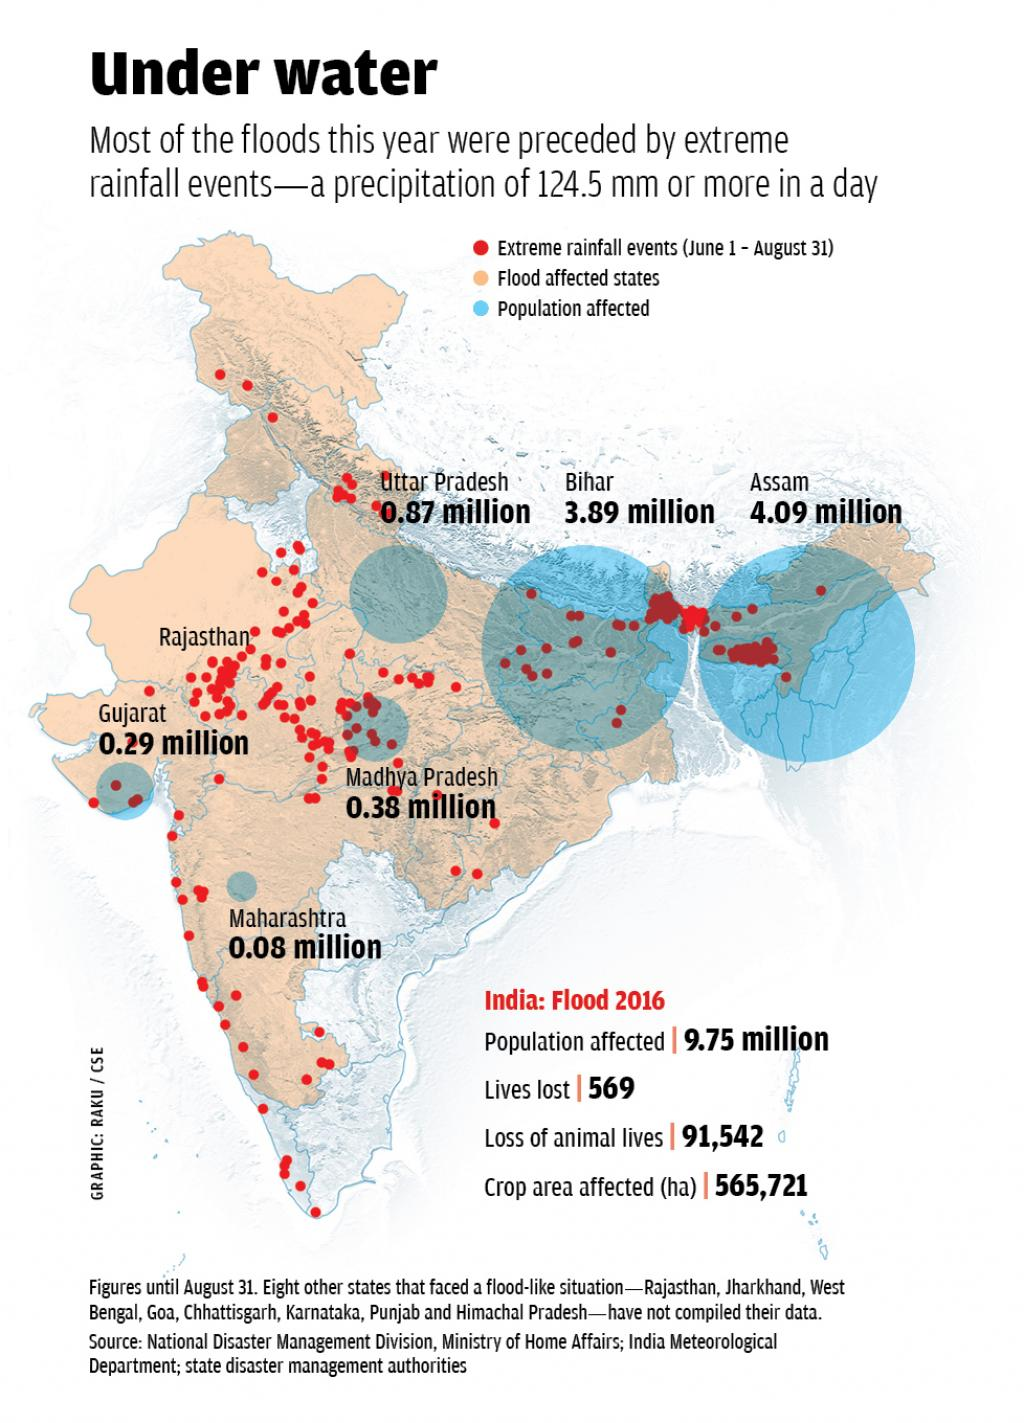 Most of the floods this year were preceded by extreme rainfall events